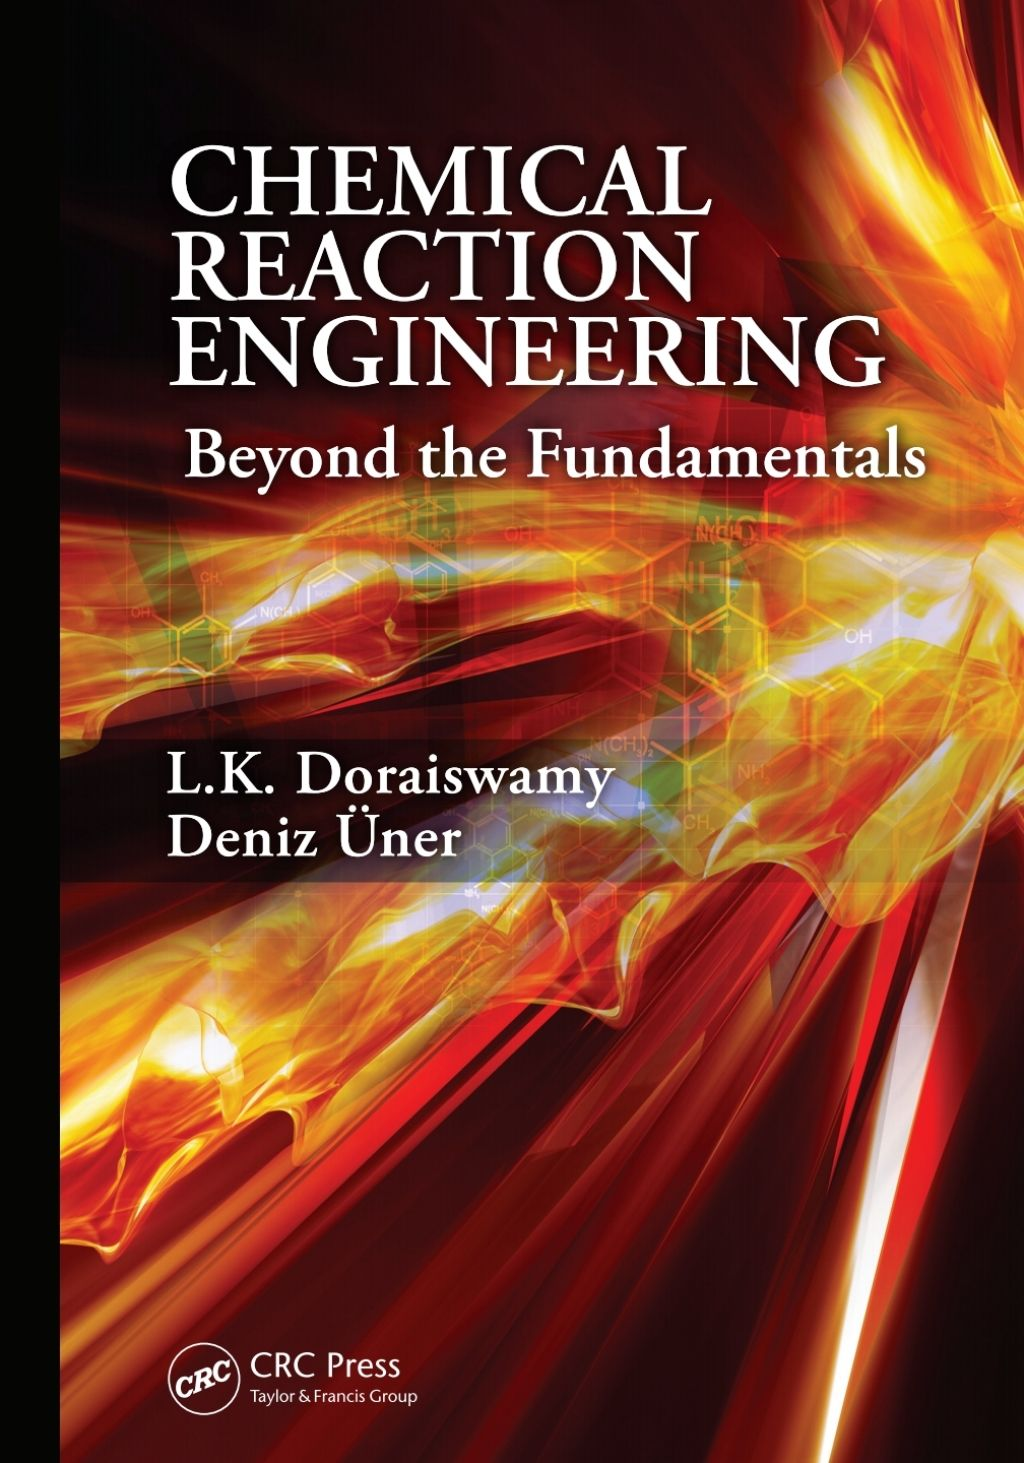 Chemical Reaction Engineering (eBook Rental) in 2019 | Products